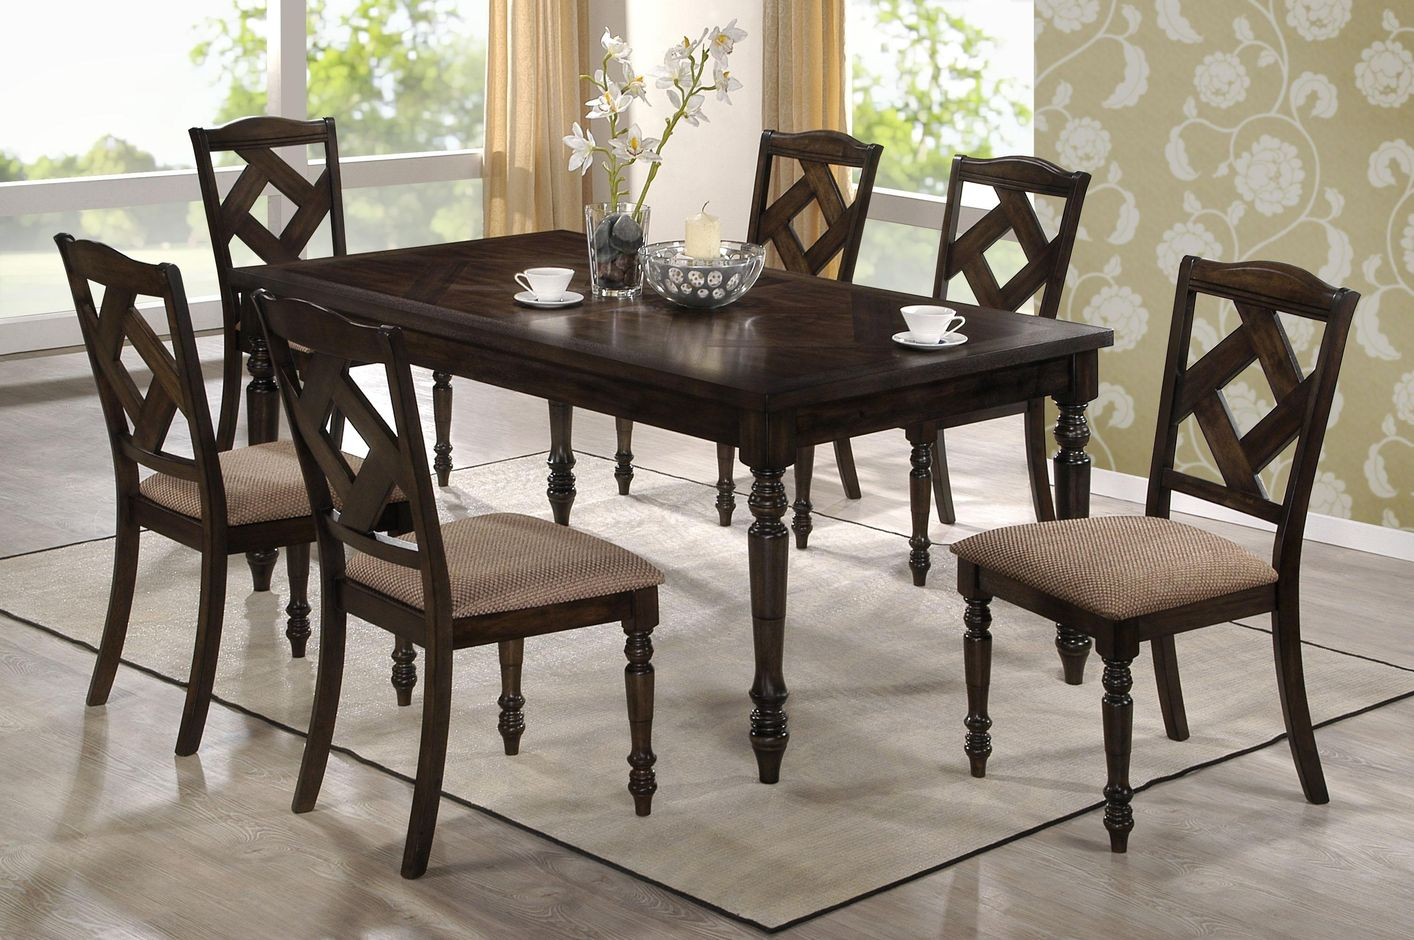 Dining 1033 brown ash wood dining table set steal a sofa for Dining table design basics